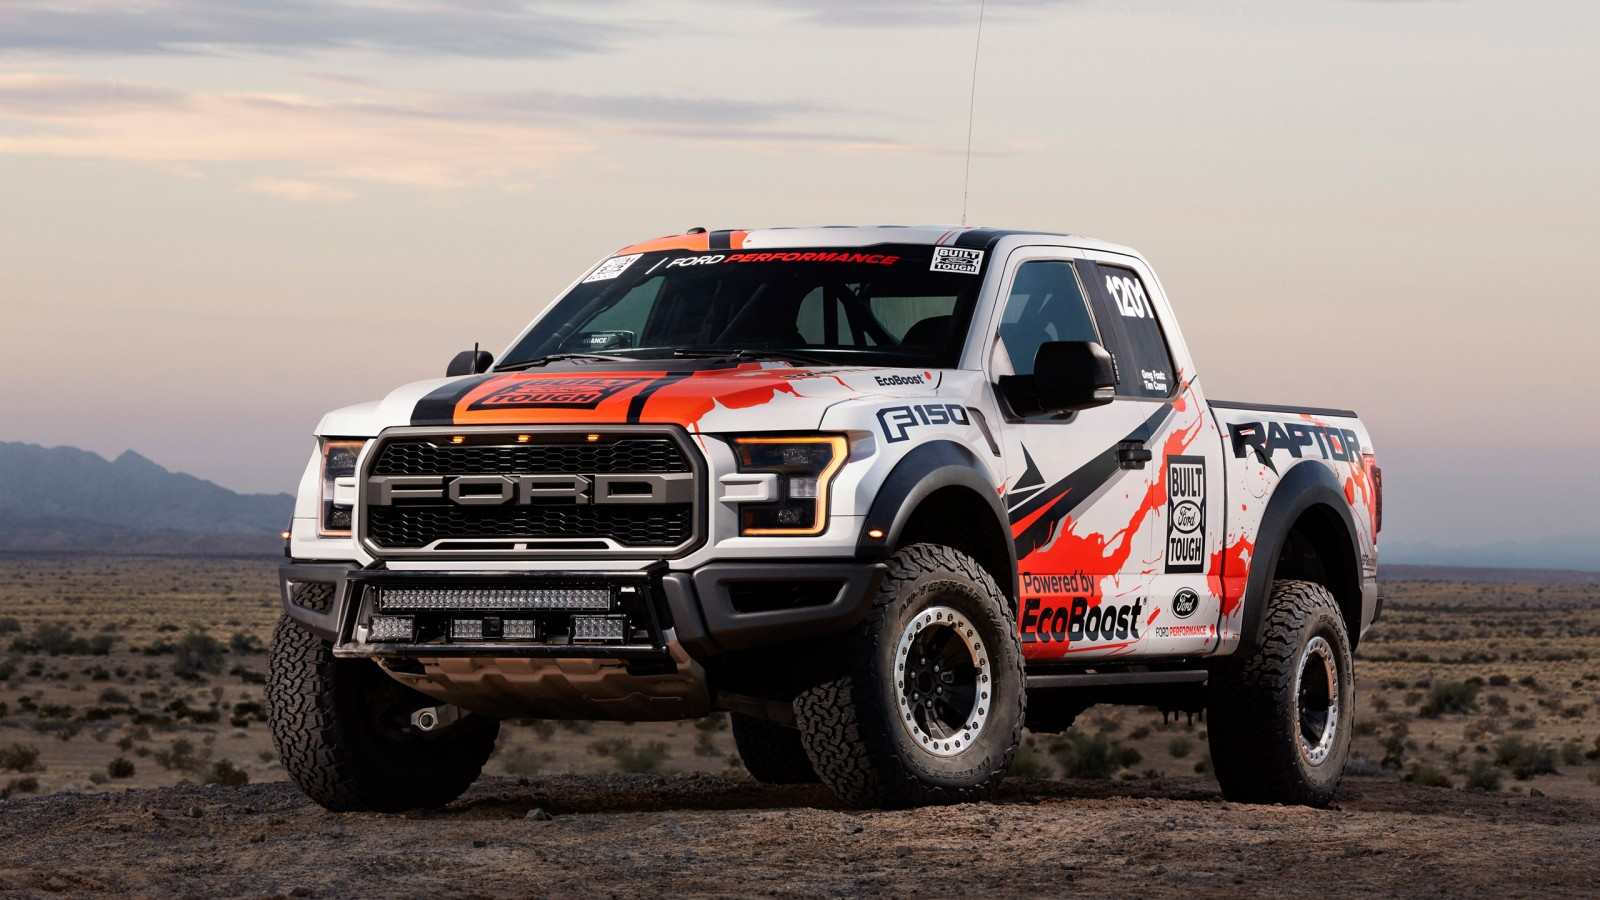 wallpaper ford raptor - photo #9